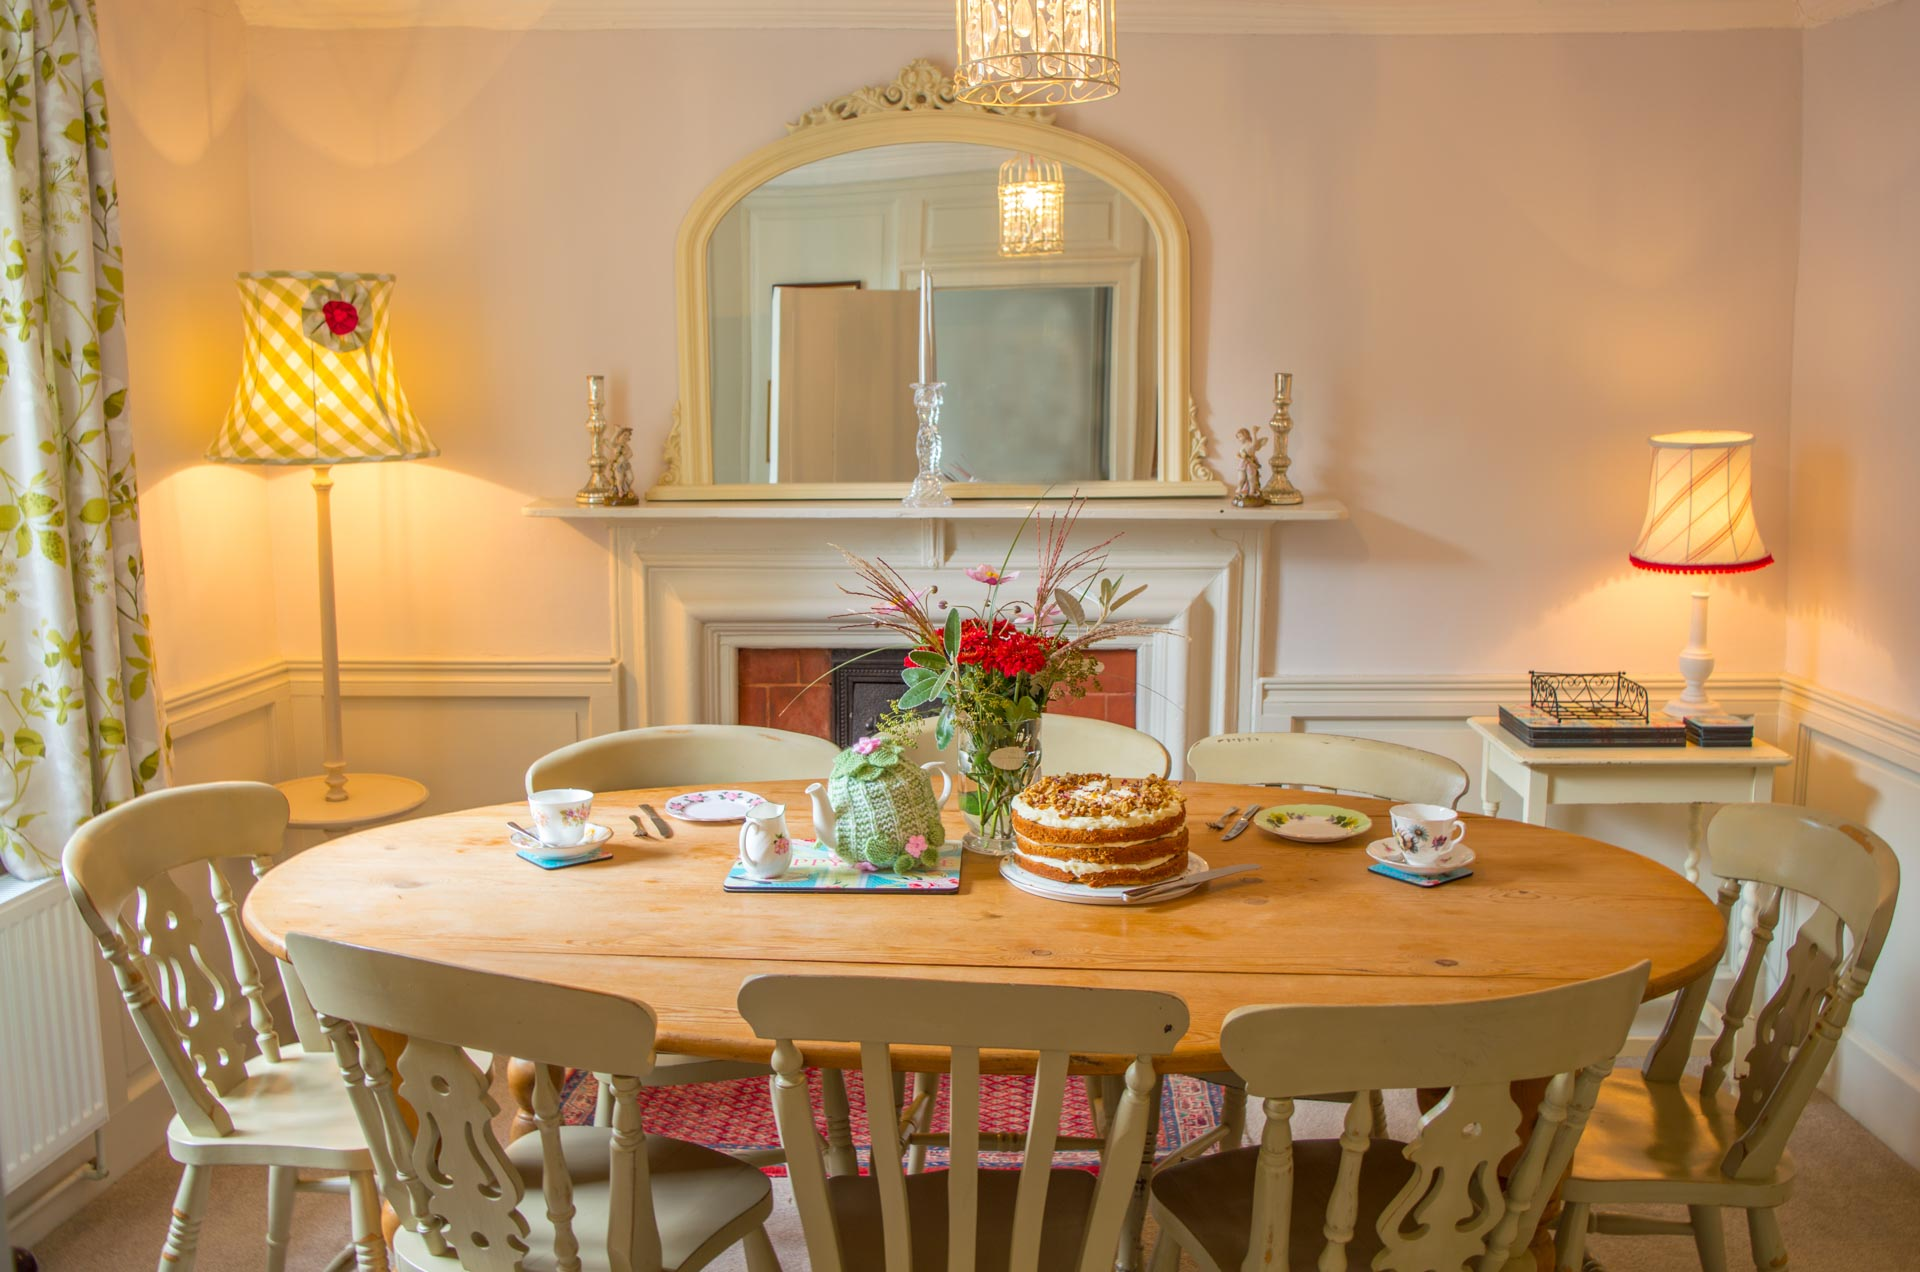 The Old Paul Pry family dining table.